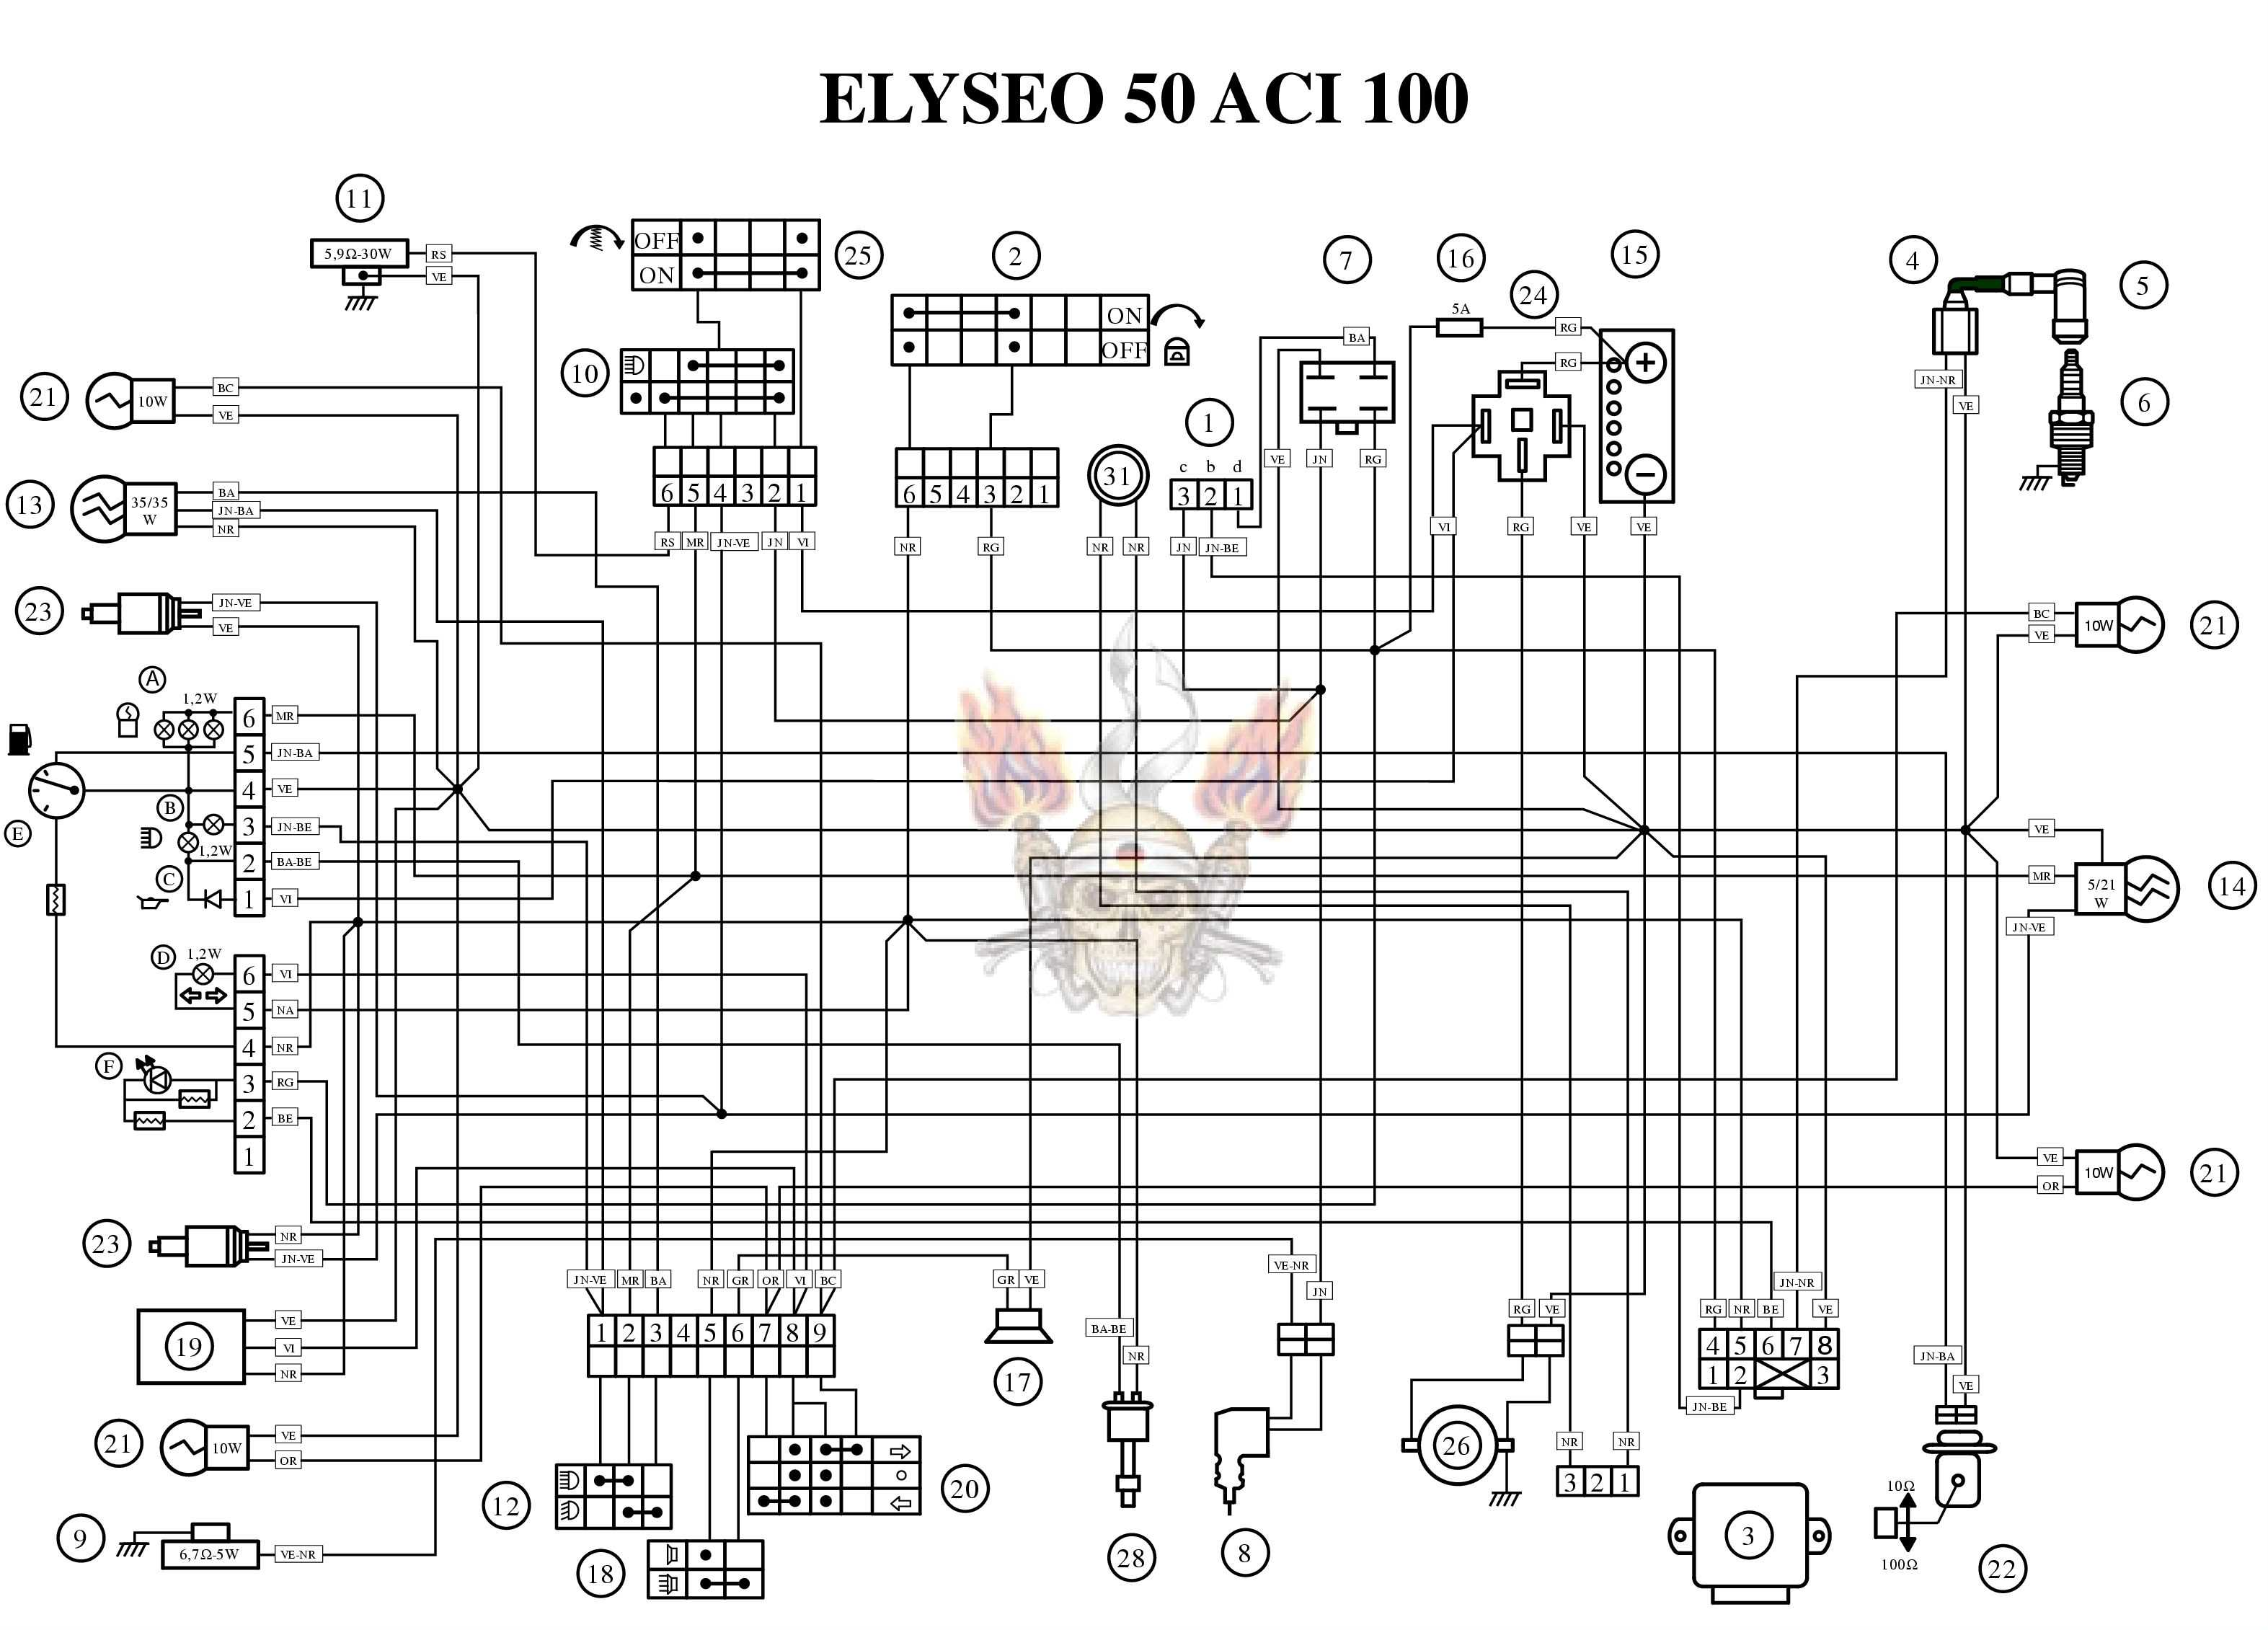 Wiring Diagram Peugeot 505 Gr Trusted Diagrams 605 Fuse Box 504 Car Used In France 206